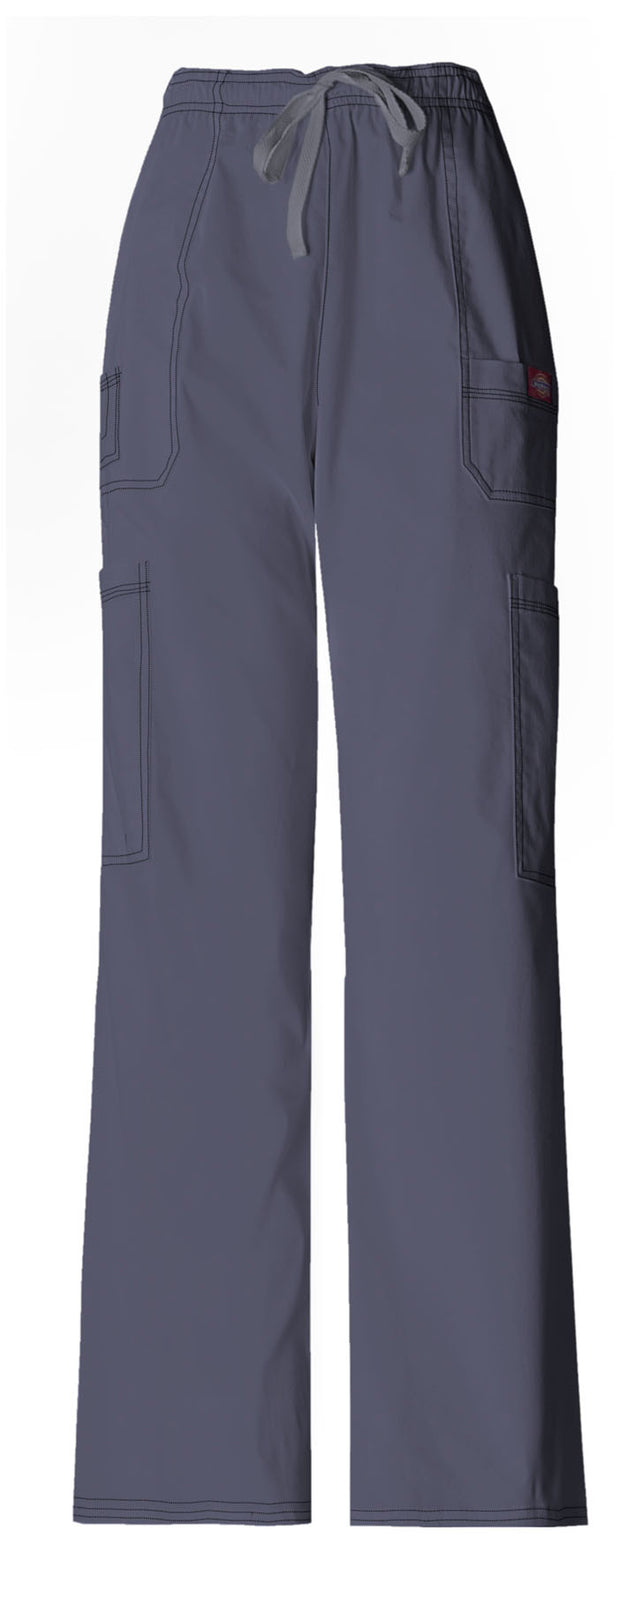 81003 Dickies Gen Flex Men's Scrub Pant - Infectious Clothing Company